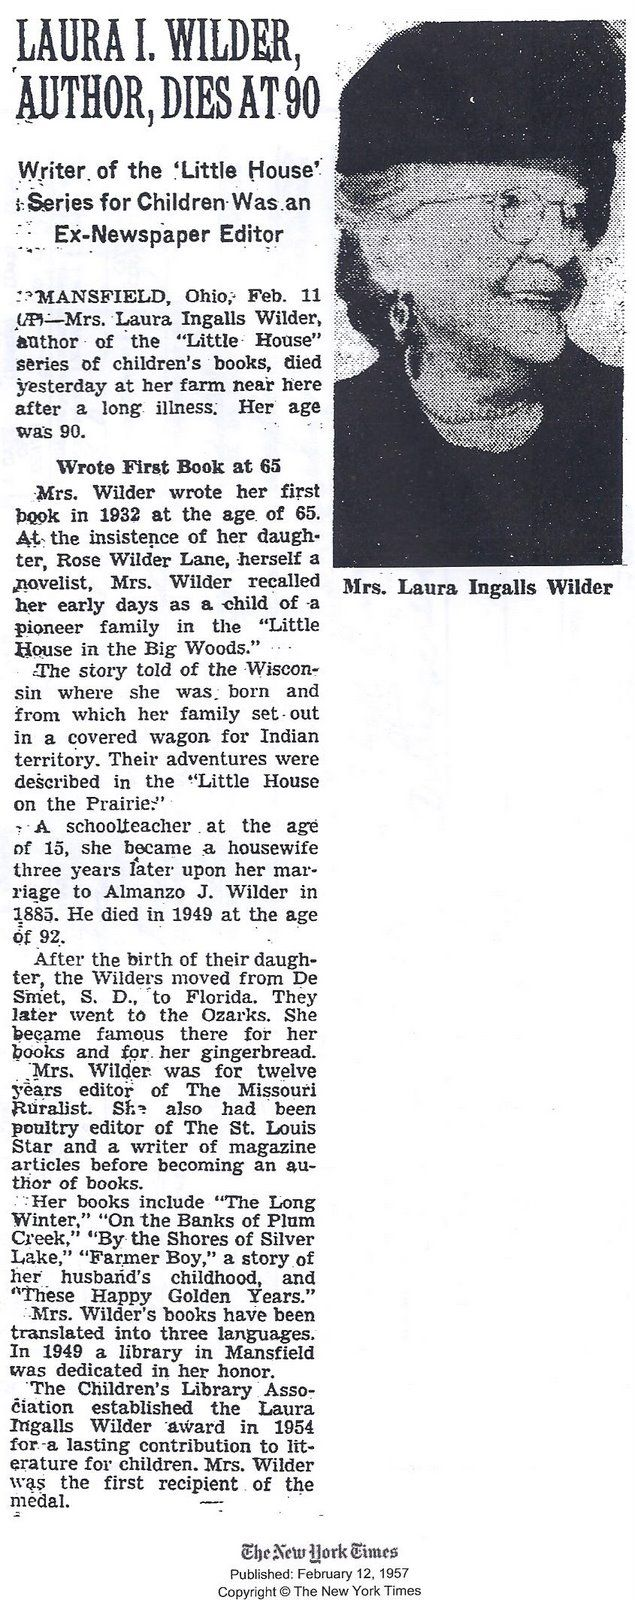 Obituario de Laura Ingalls Wilder en 1957.